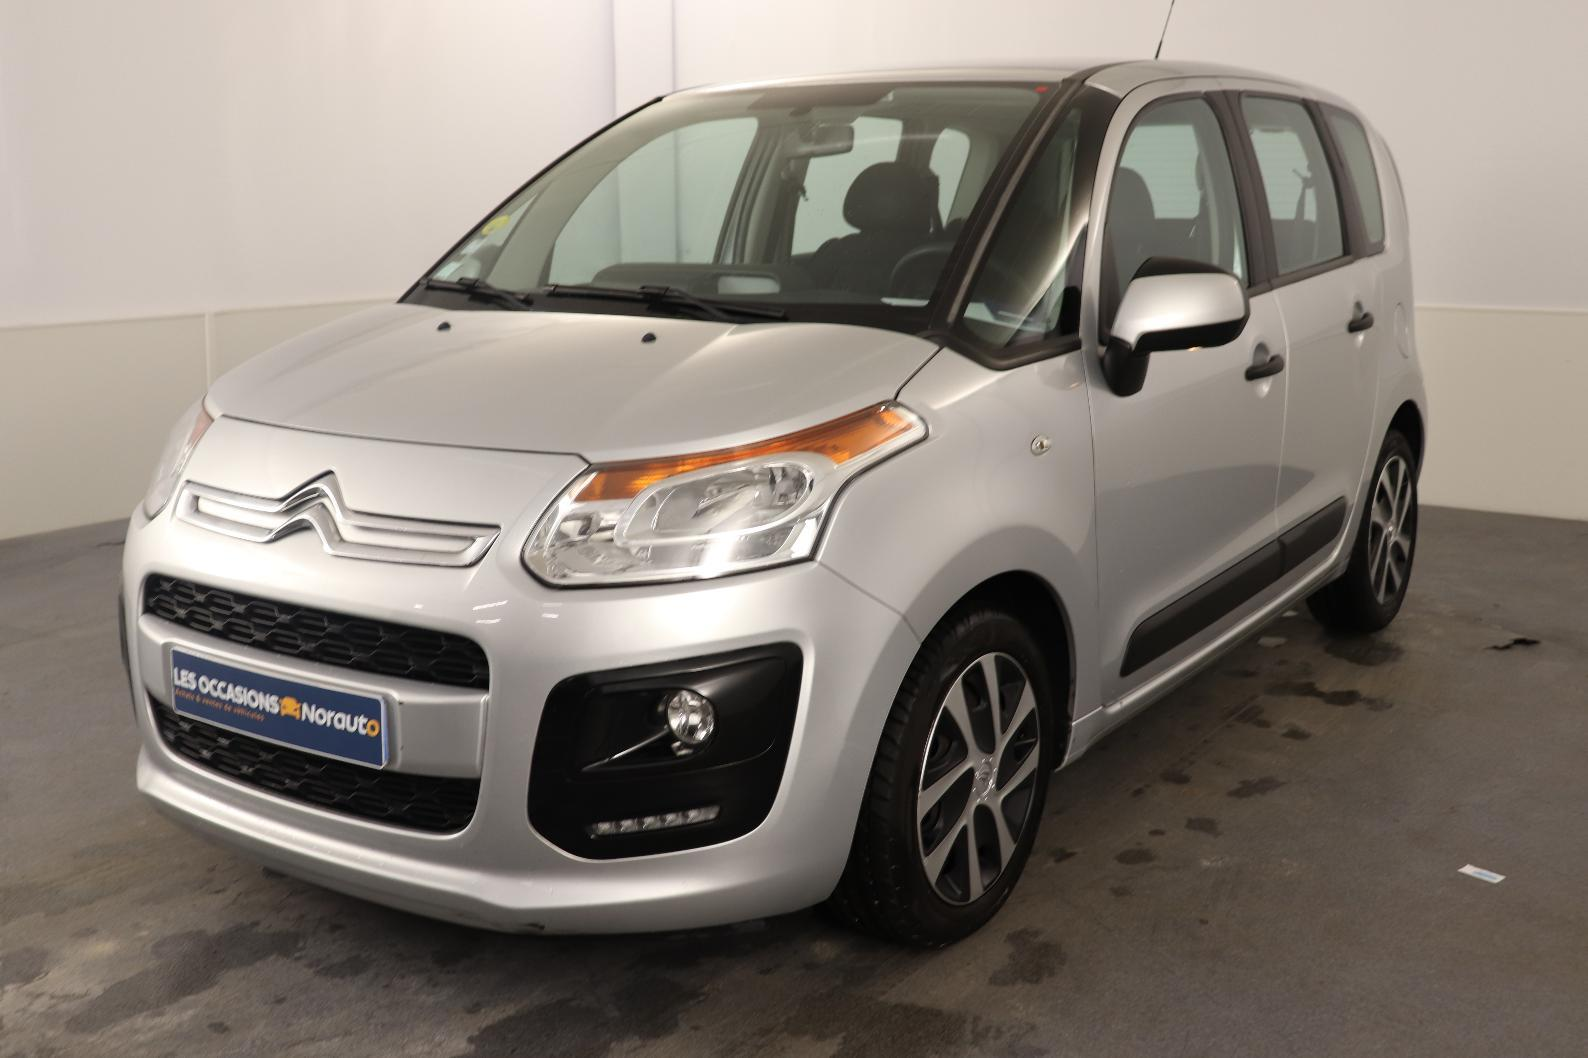 CITROEN C3 PICASSO BUSINESS C3 Picasso HDi 90 Business